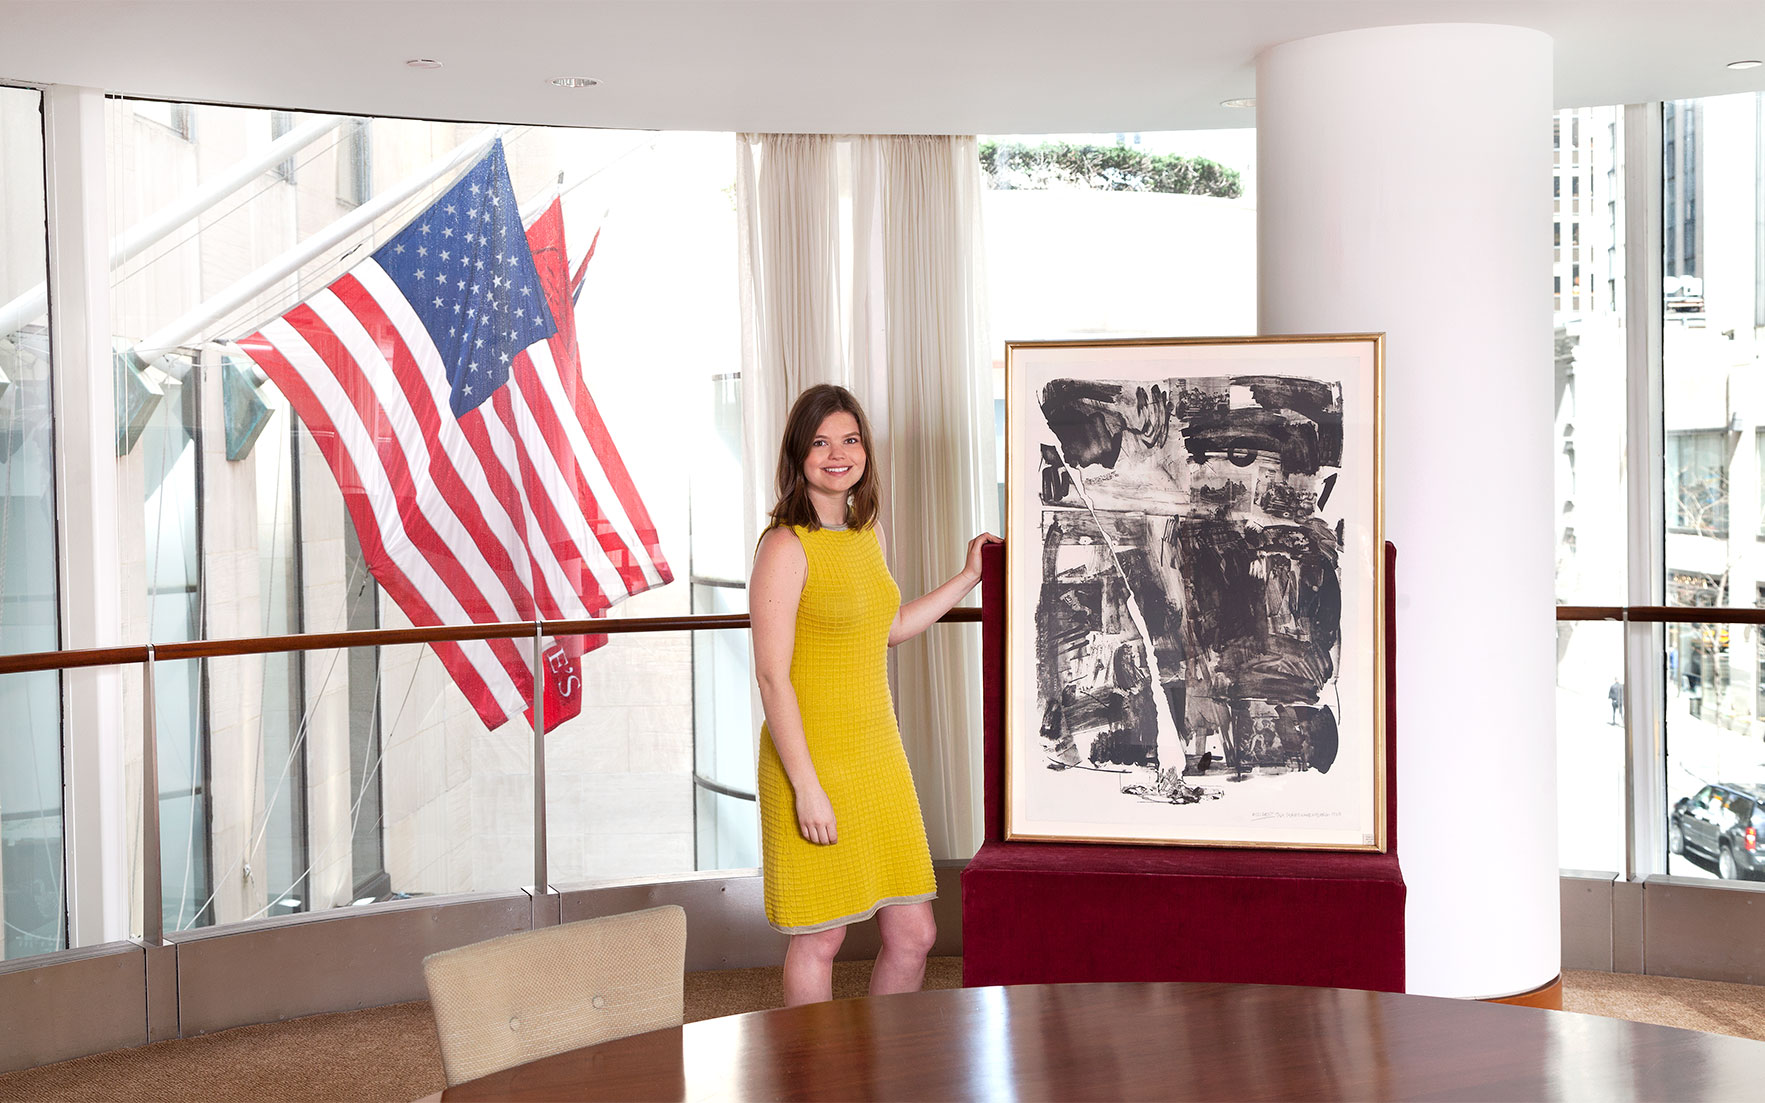 Prints specialist Elsie Widing with Robert Rauschenberg's Accident, 1963. Estimate $40,000-60,000. This lot is offered in Prints & Multiples on 19-20 April 2017, at Christie's in New York